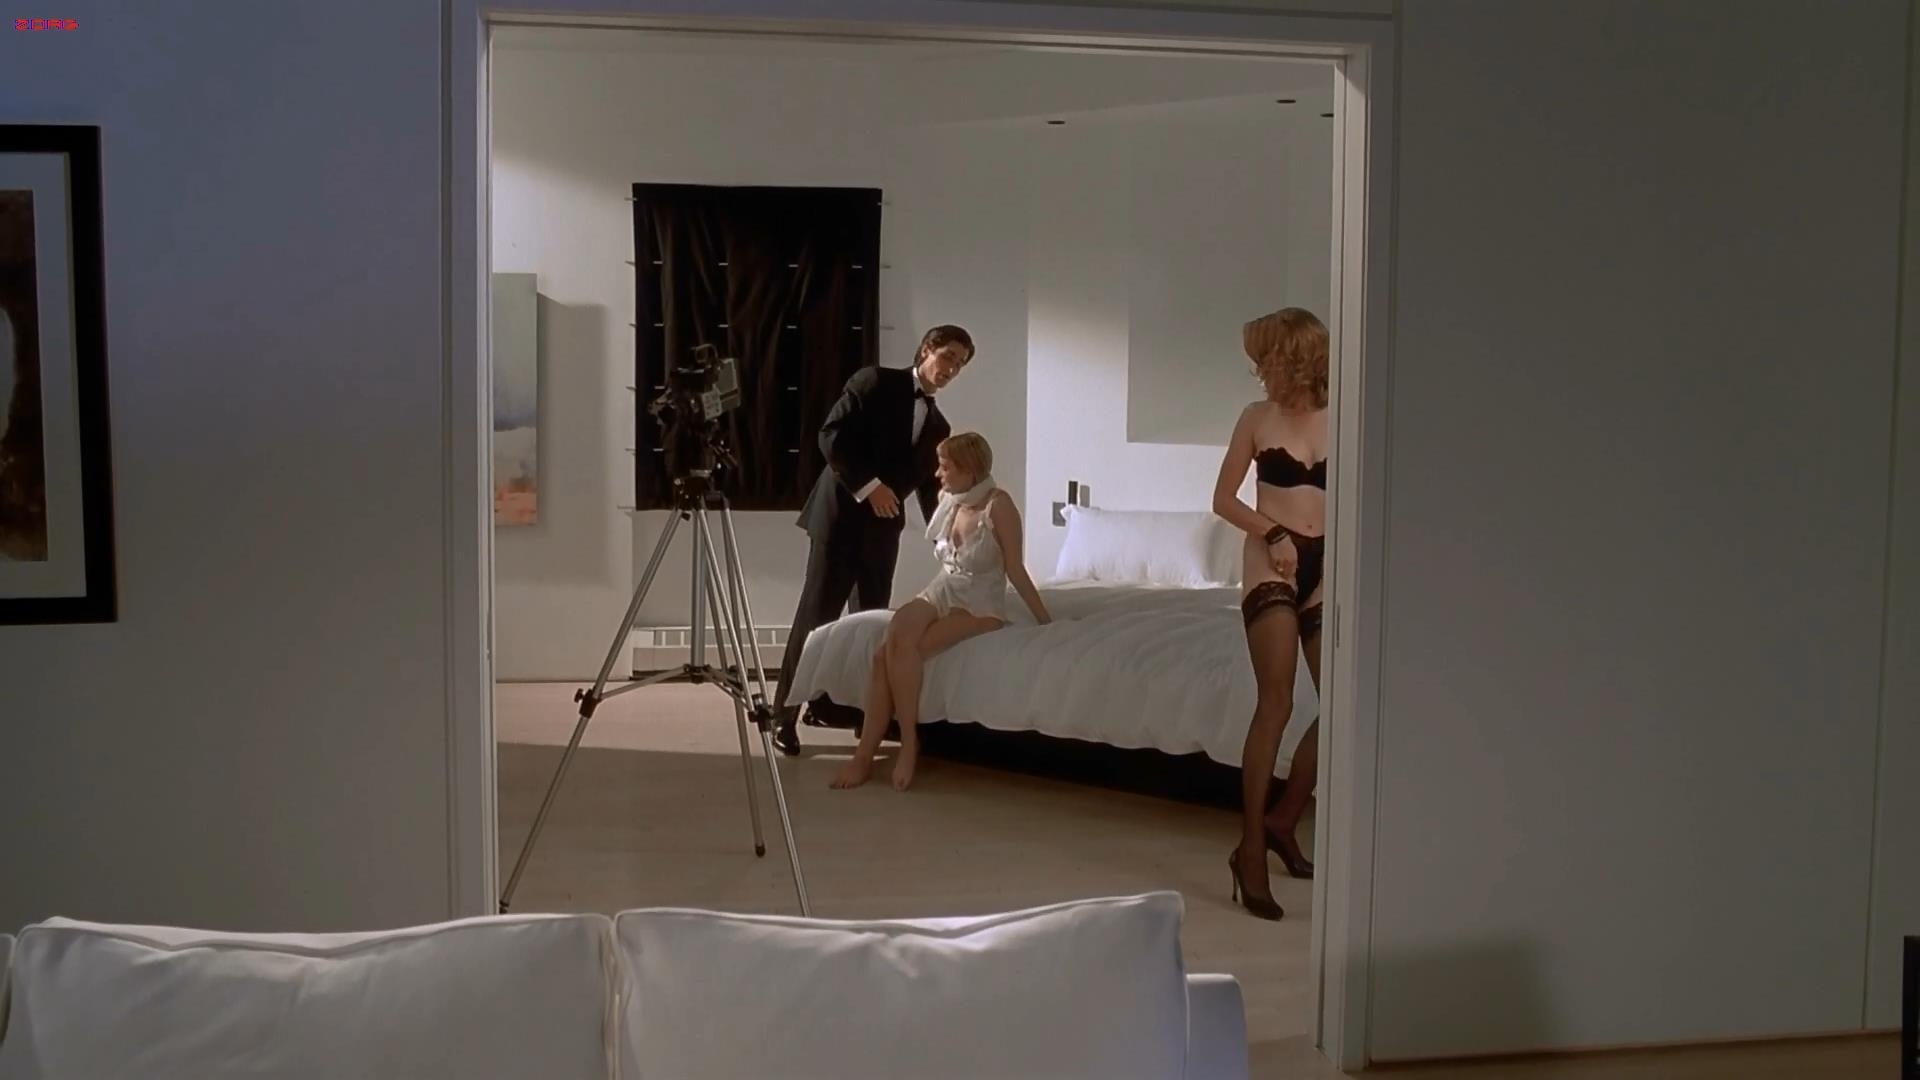 Cara Seymour and Krista Sutton all naked sex games - American Psycho HD1080p